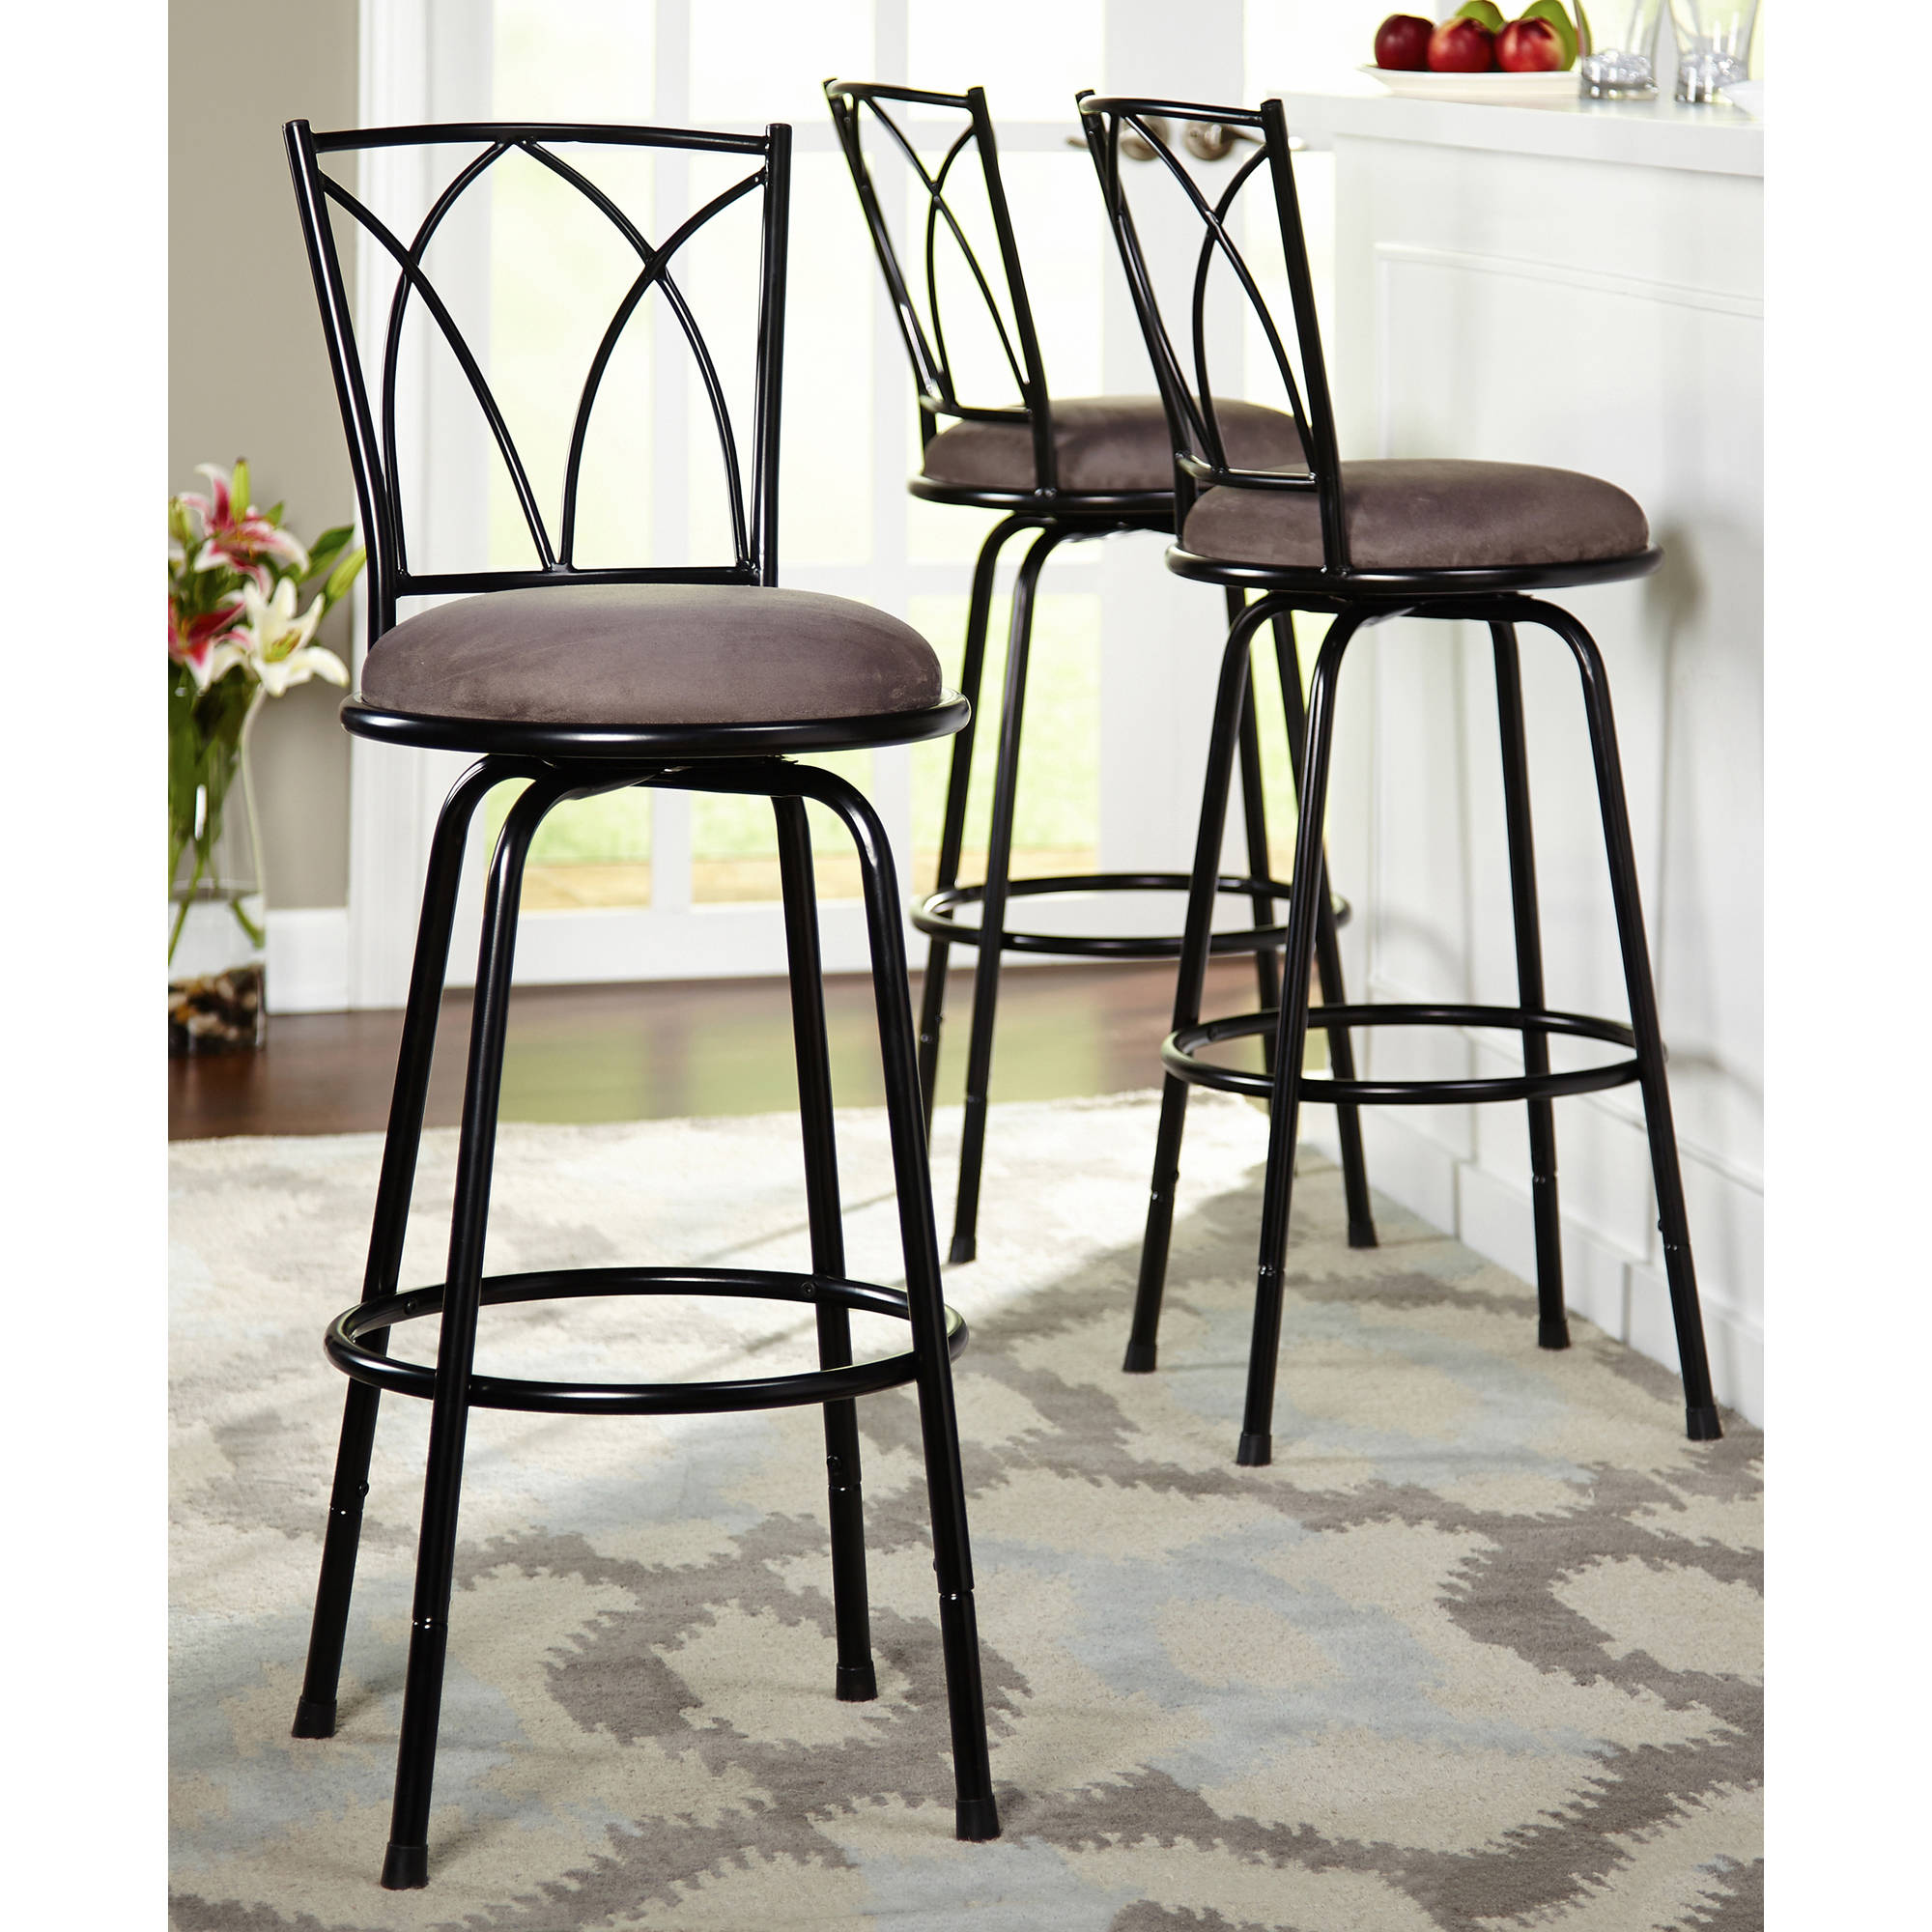 Bar Chair For Sale Malaysia Delta Adjustable Metal